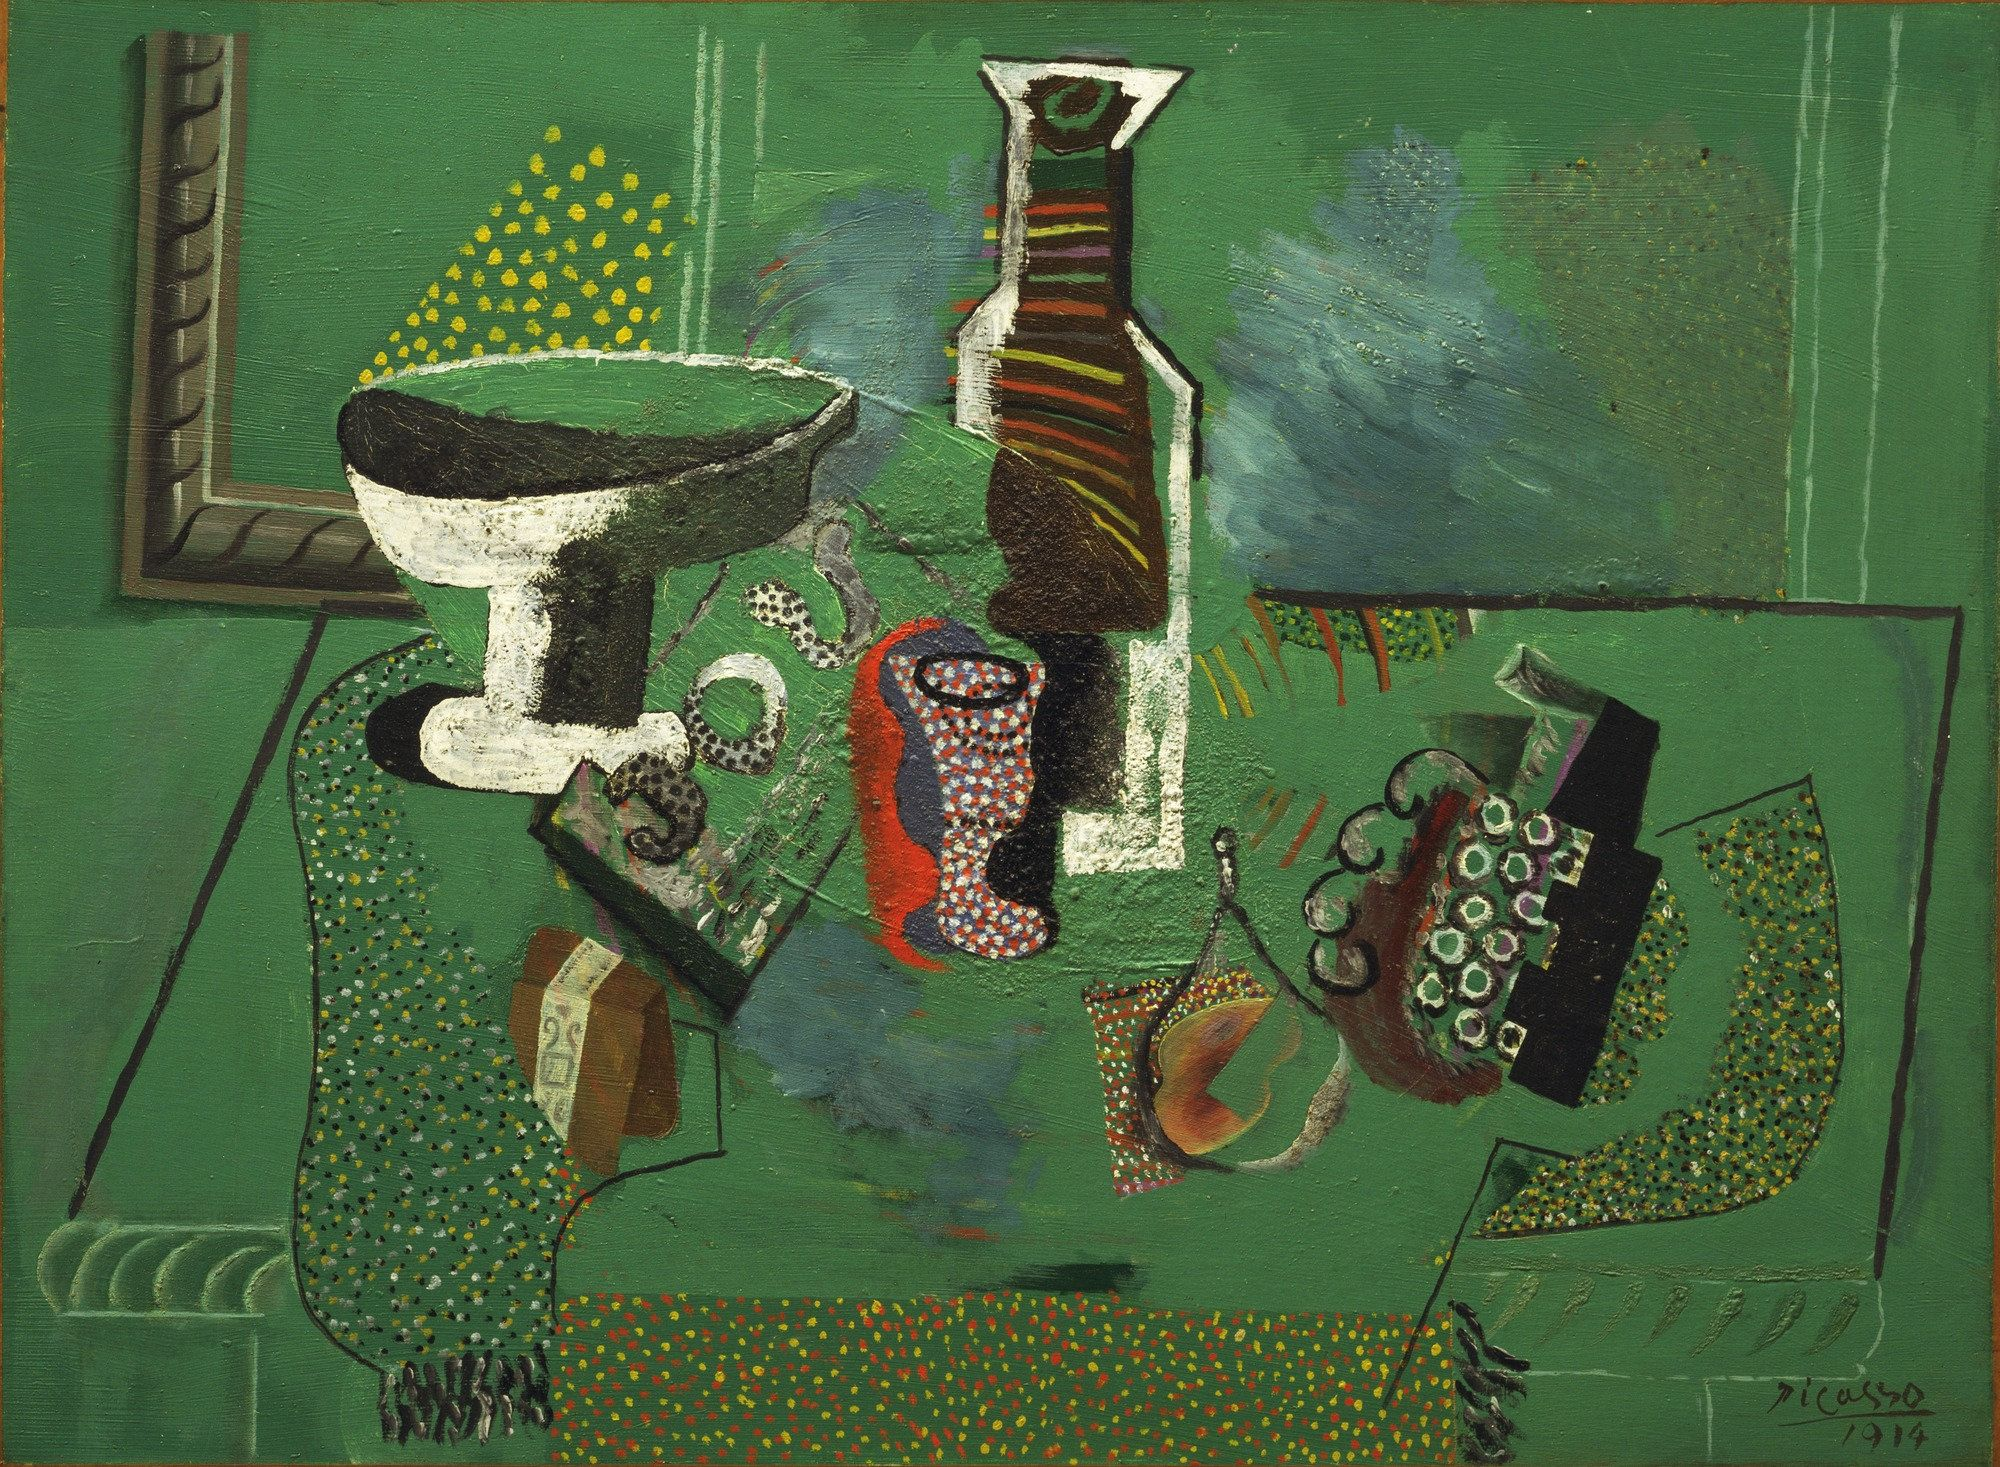 Fl 5 Pablo Picasso. Green Still Life. Avignon, summer 1914. Oil on canvas.  Lillie P. Bliss Collection. Painting and Sculpture